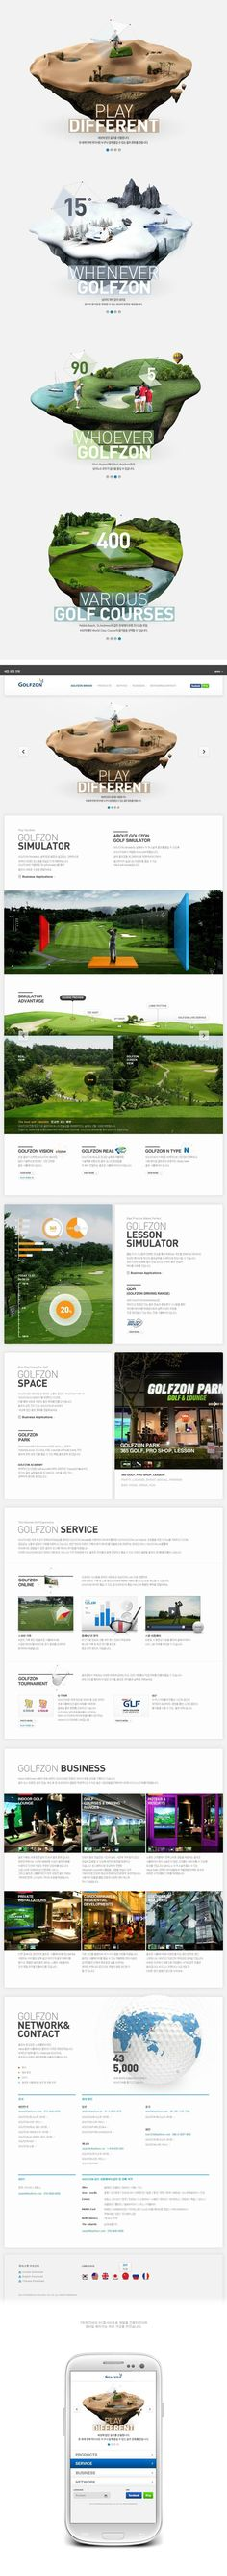 GolfZone Global Website Design by Plus X , via Behance